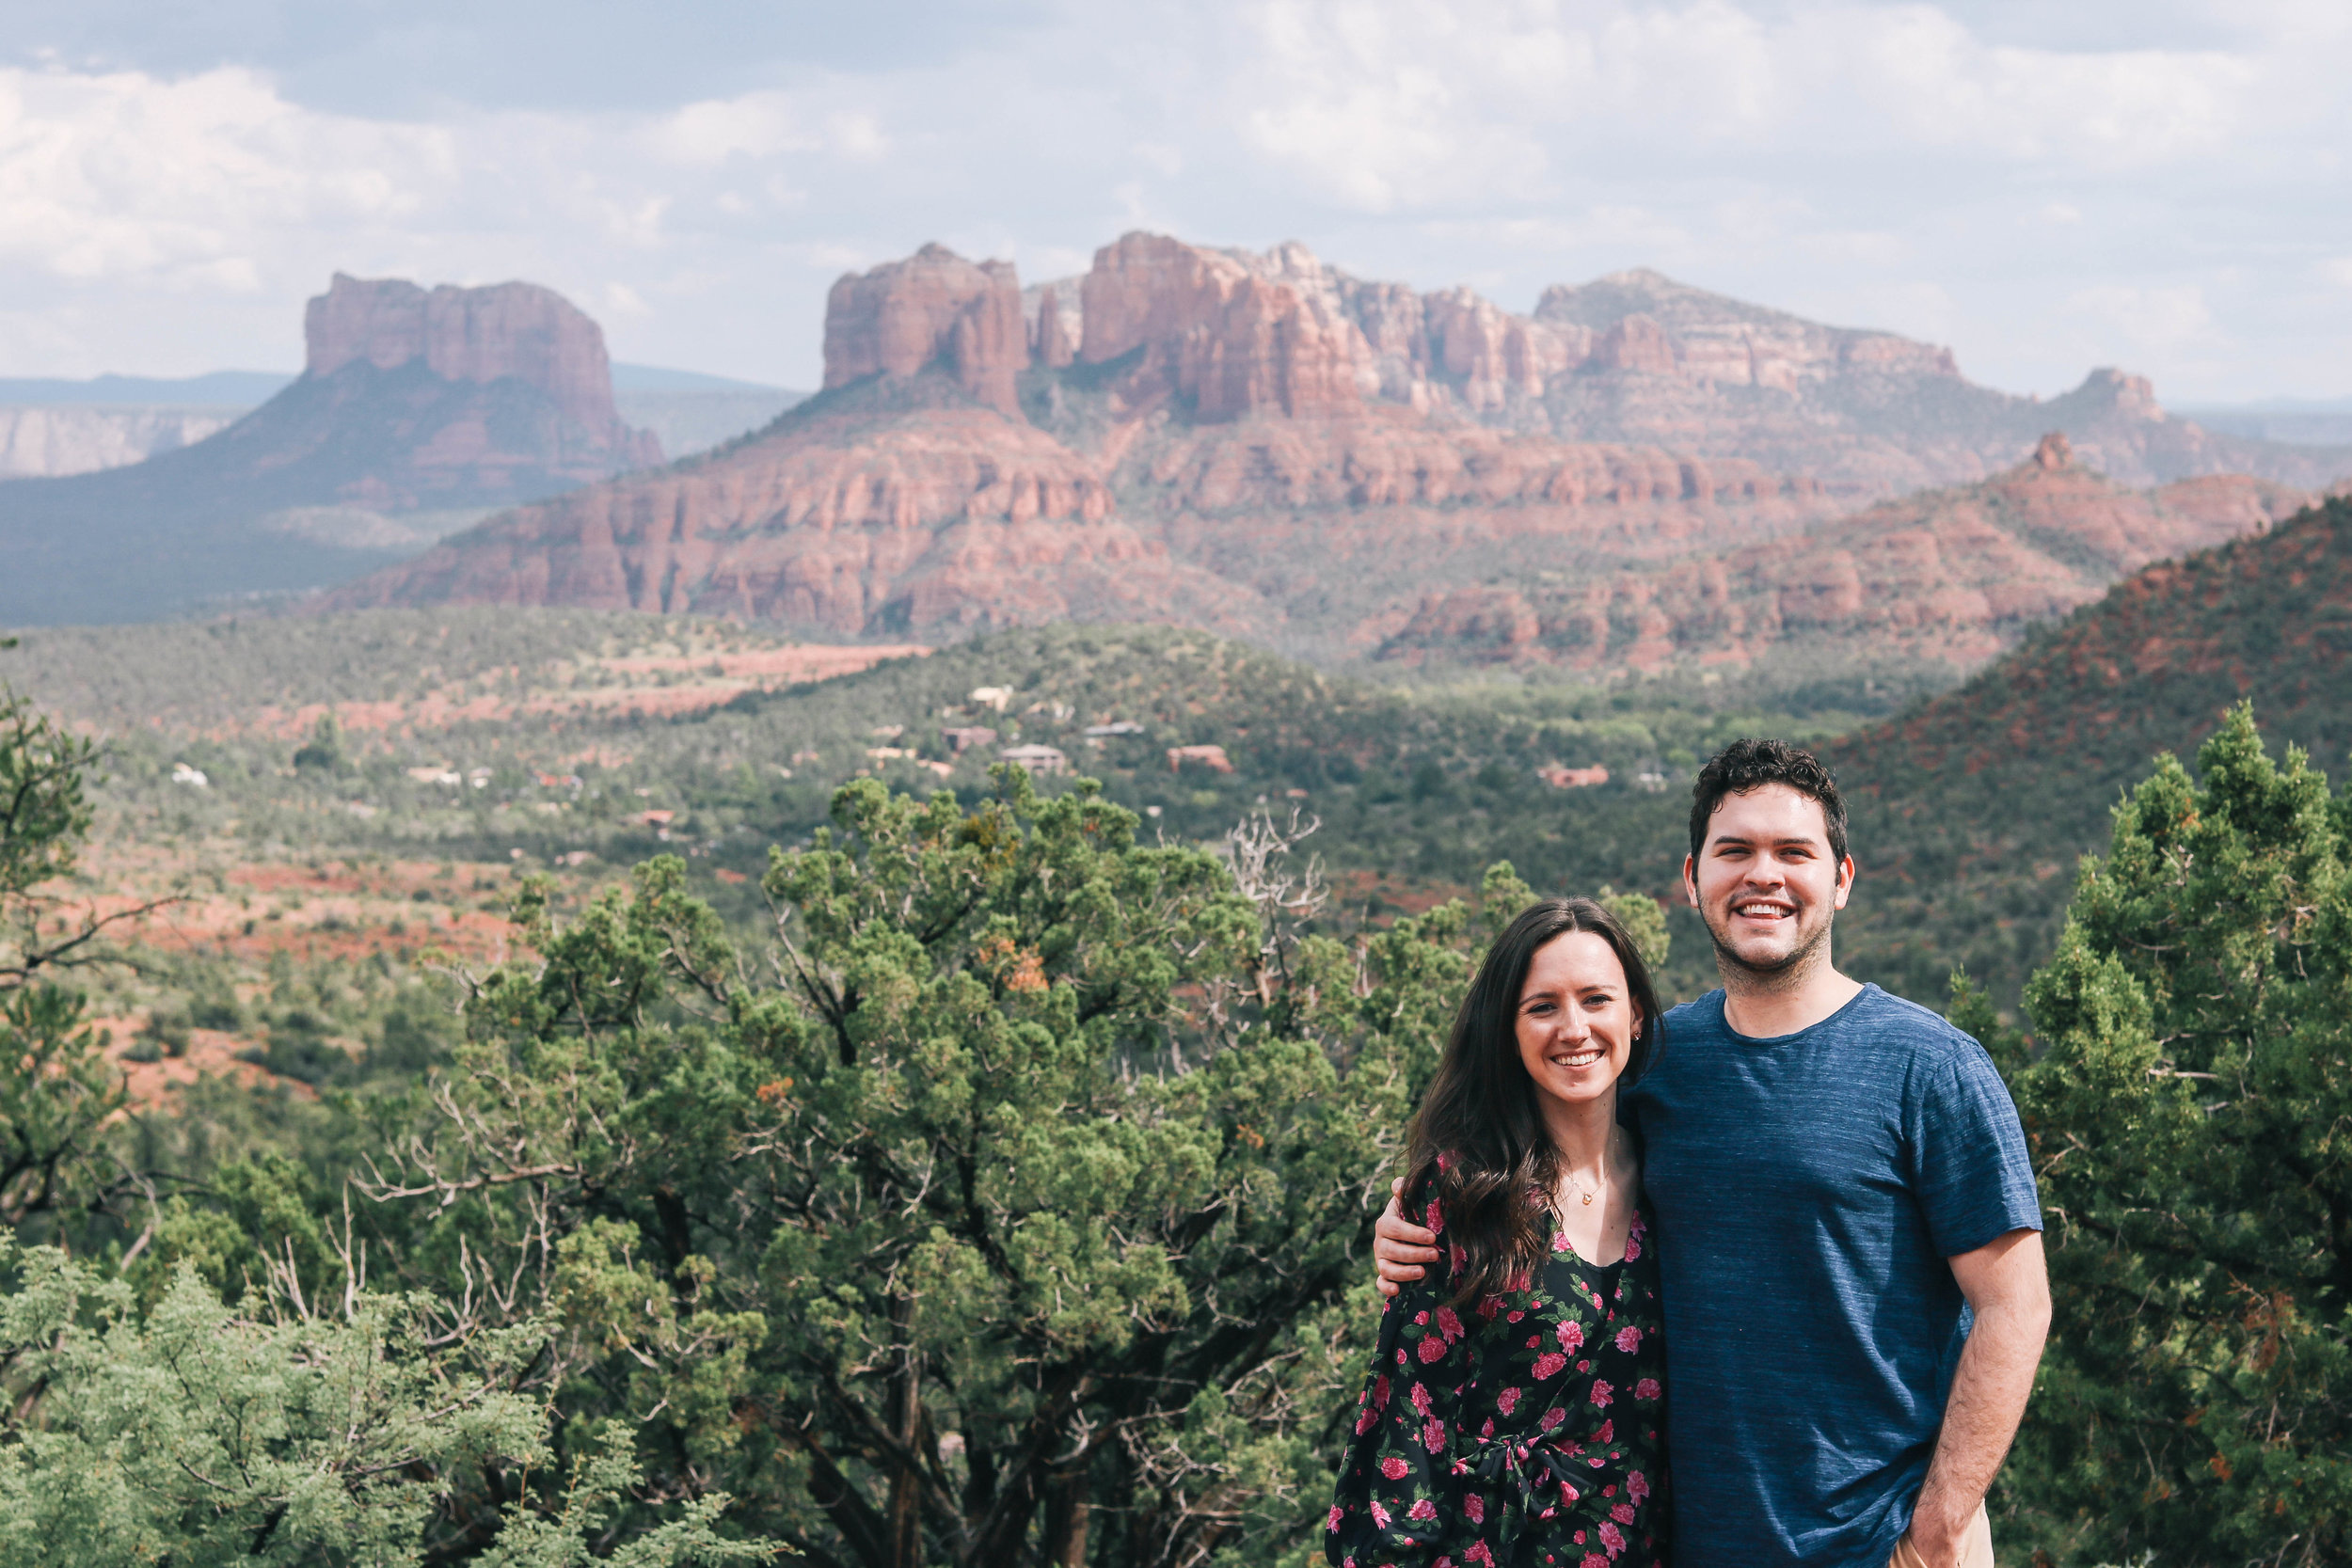 bb-sedona-together-001 (1 of 1).jpg